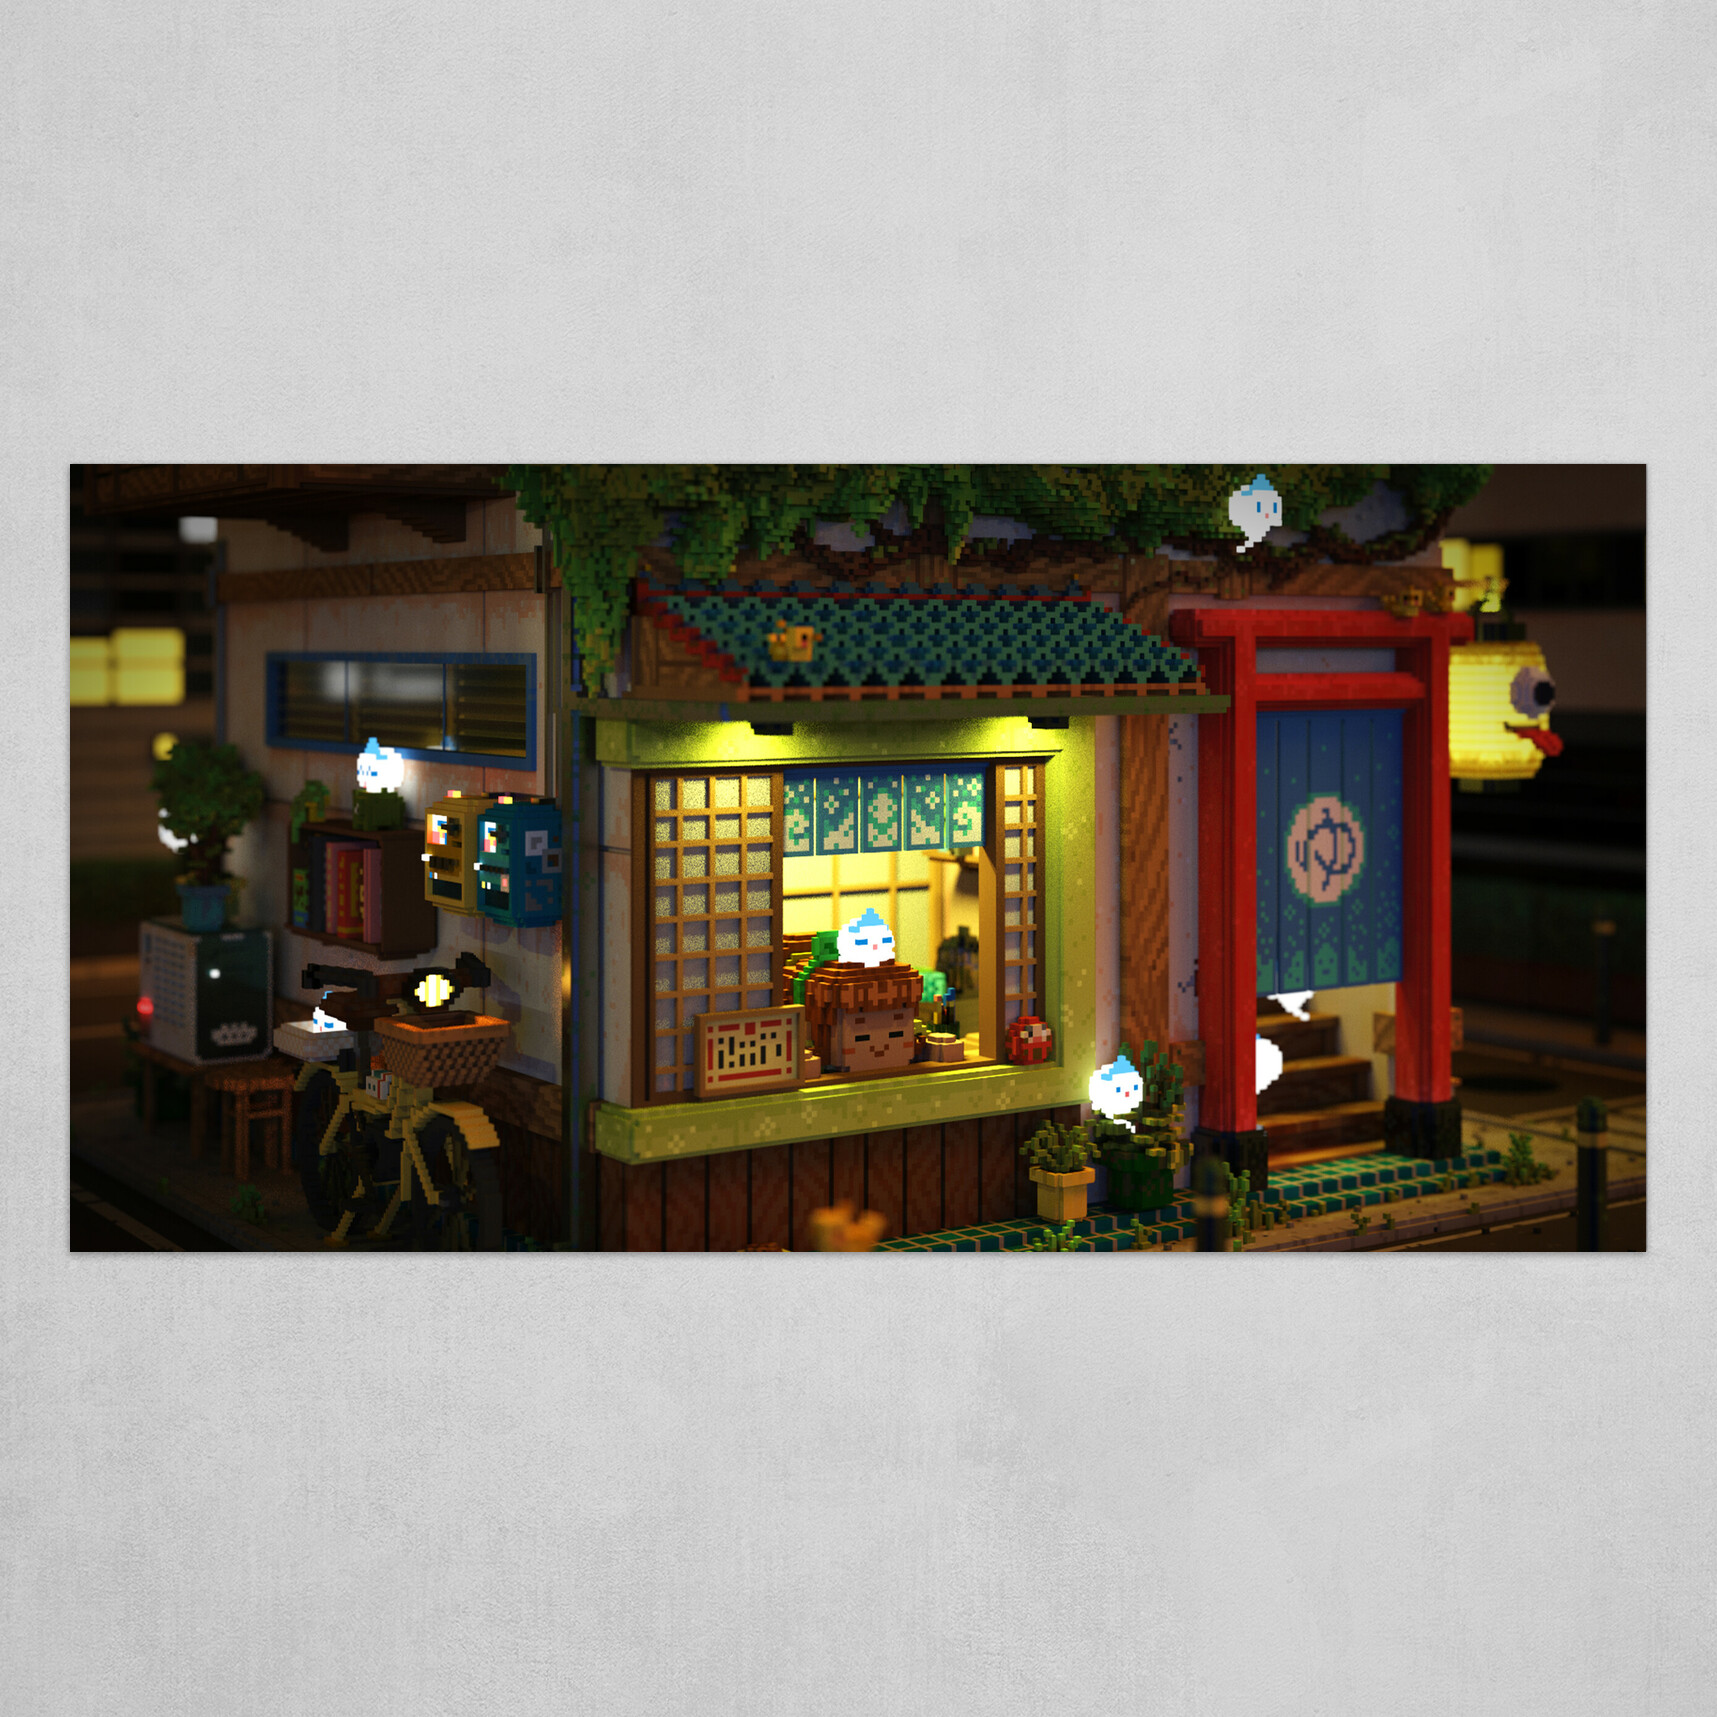 Voxel - Onsen Street - Night 05